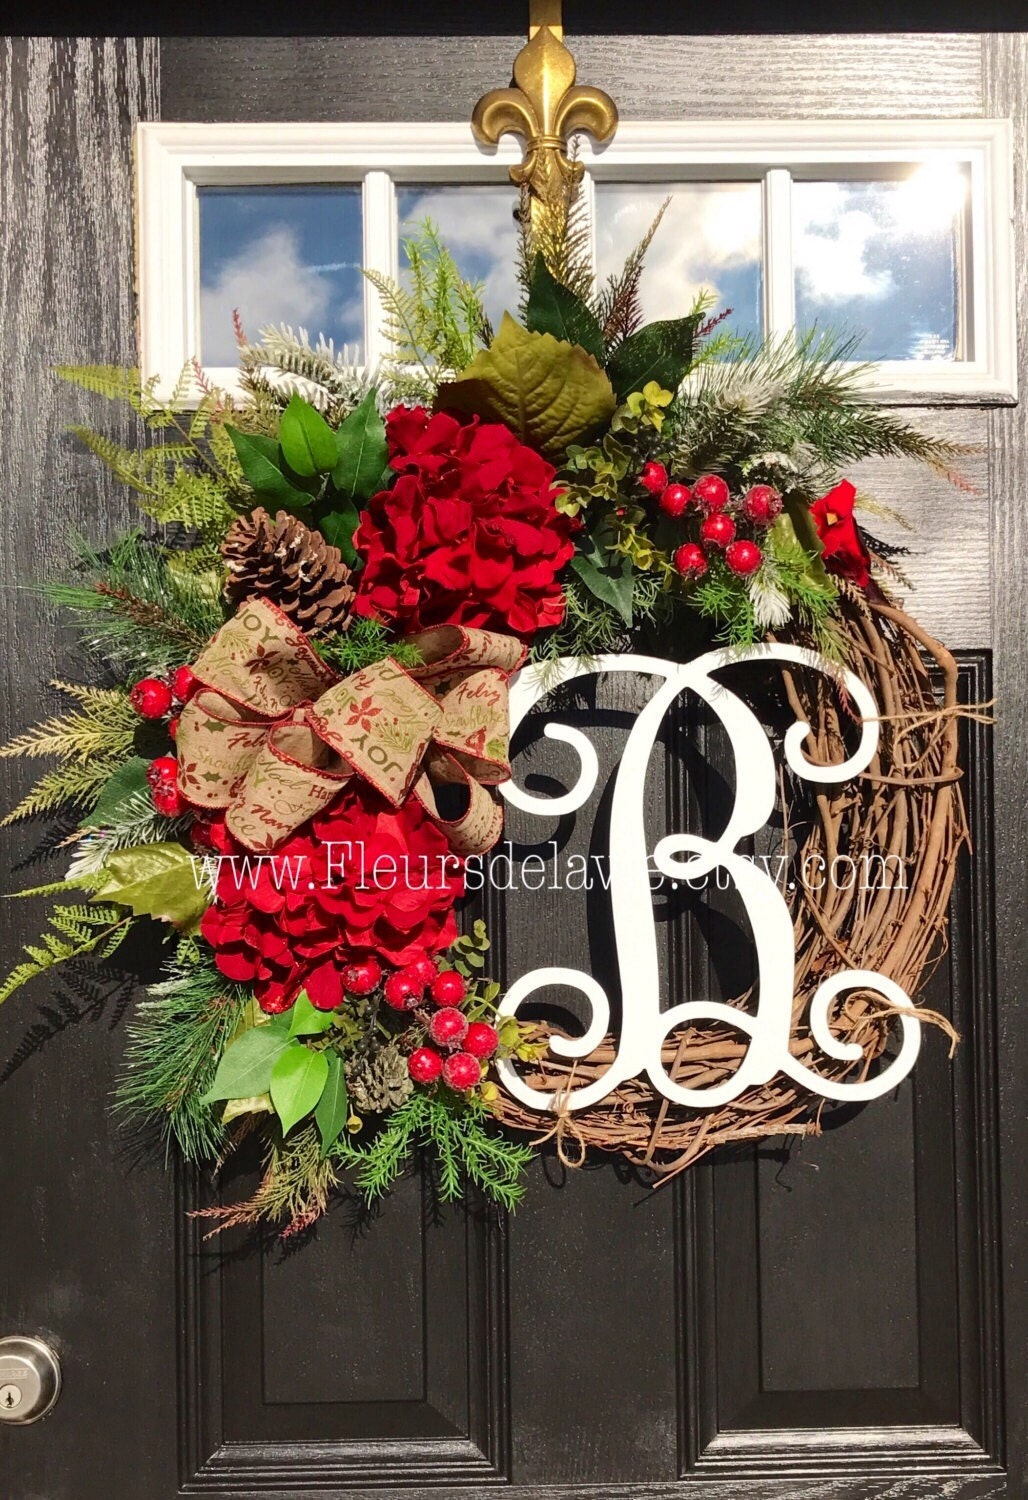 on sale 50 off ready to ship christmas wreath for front door monogram wreaths holiday wreaths front door wreath seasonal door wreath - Christmas Wreaths Etsy